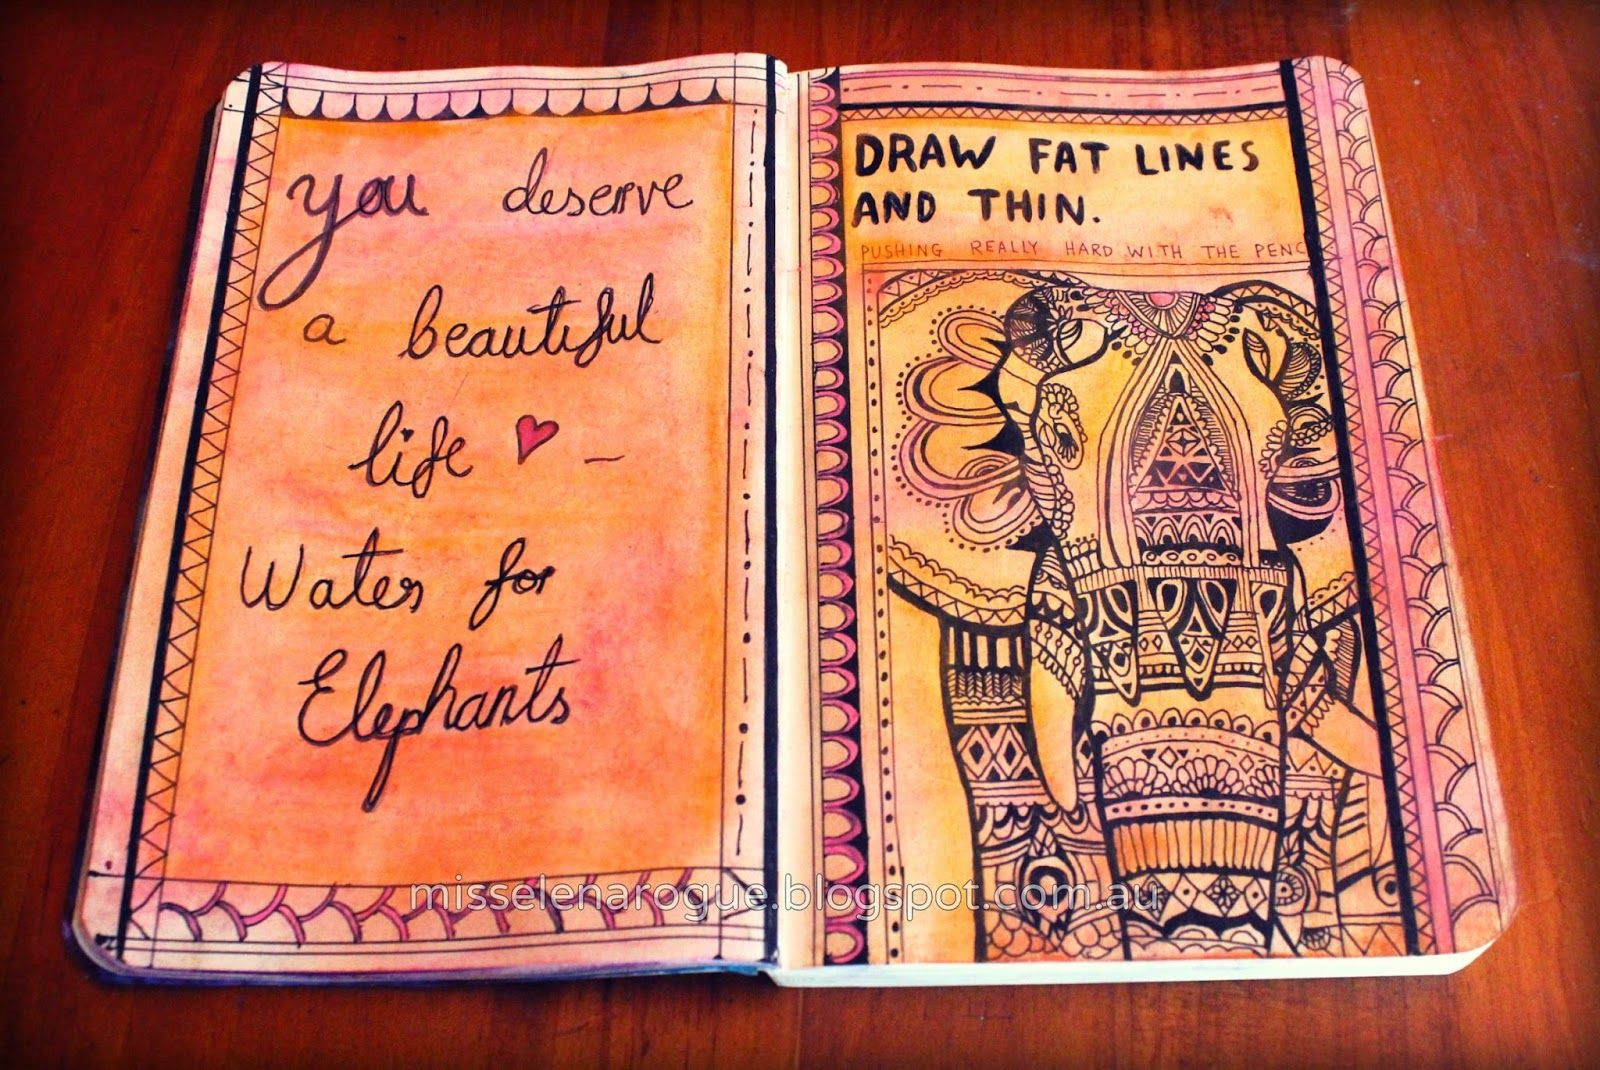 Wreck this journal ideas, Draw fat lines and thin. #Art